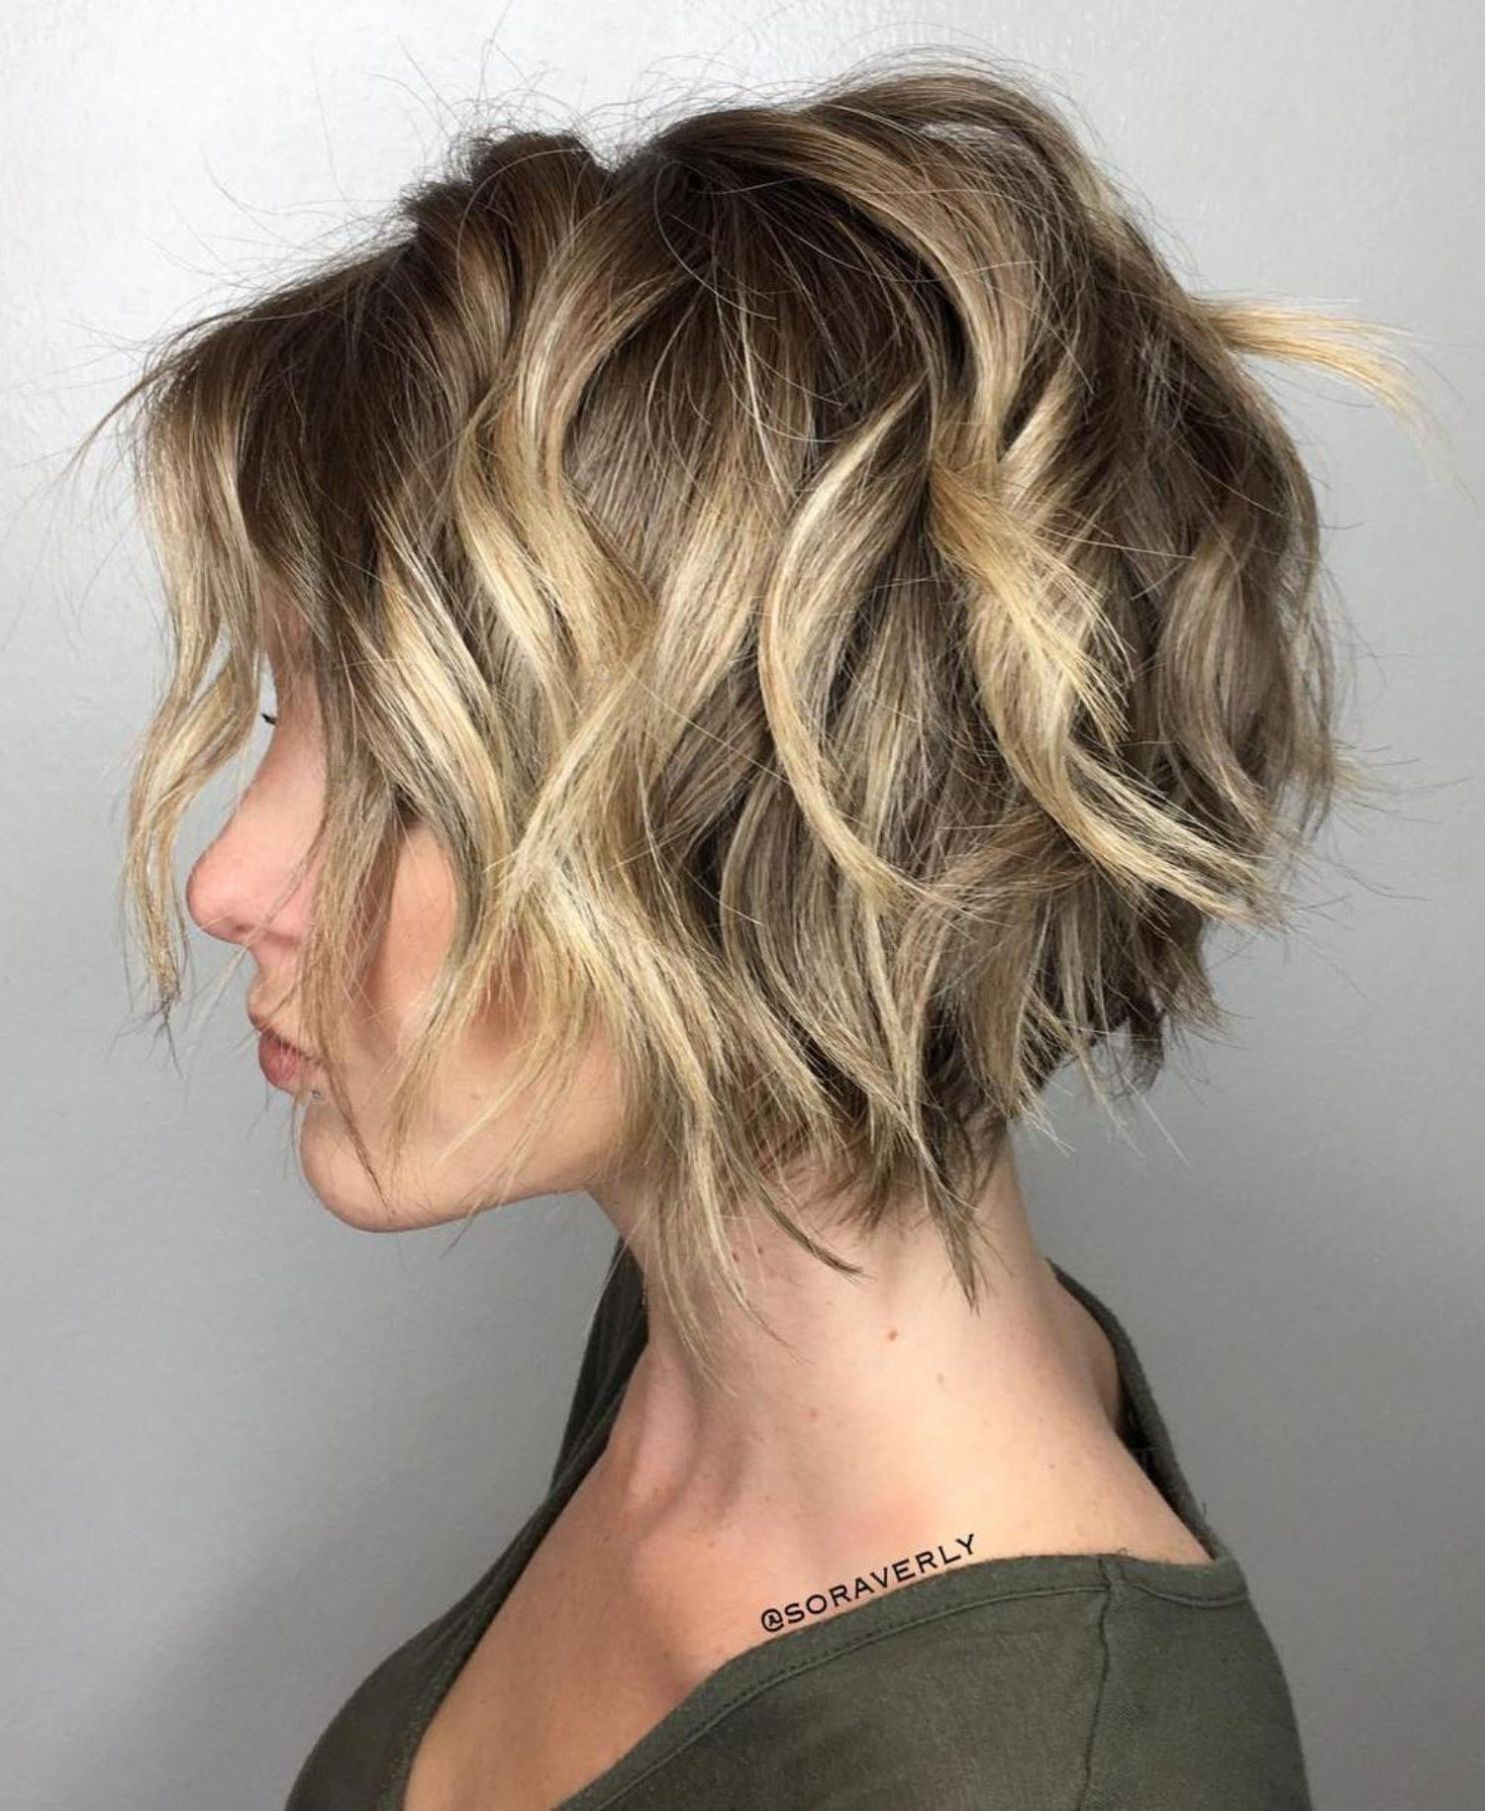 12 Mind Blowing Short Hairstyles for Fine Hair   Messy bob ...